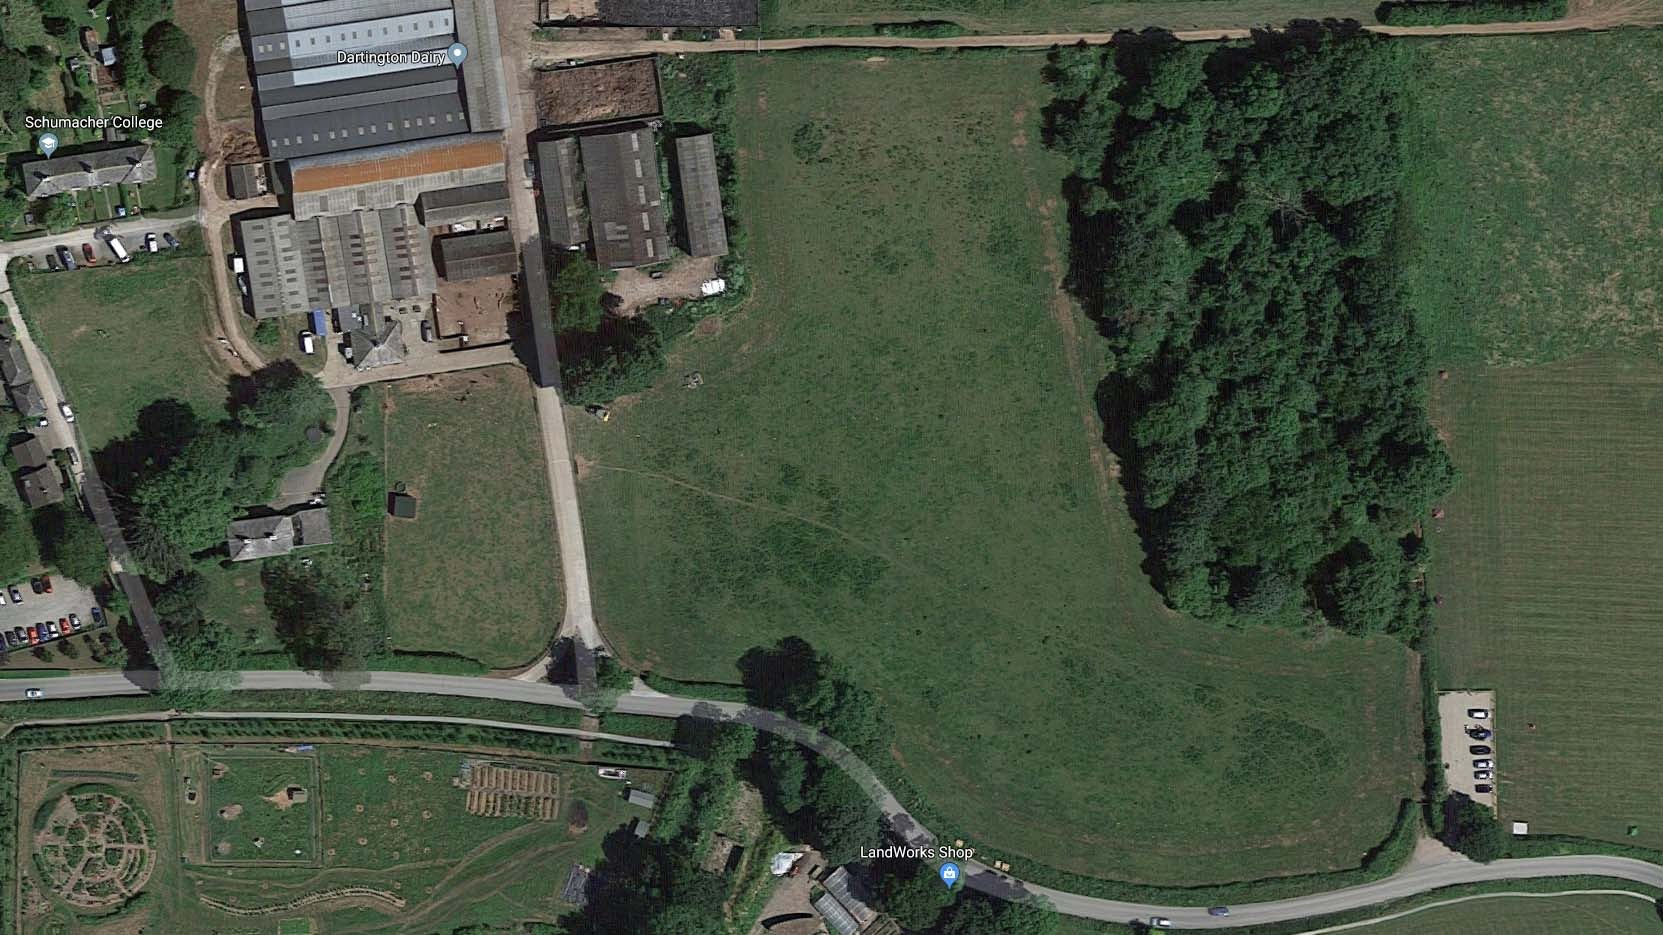 Above: Aerial view of Plum Plot, the site of Dartington's experiments into silvopasture. Old Parsonage Farm can be seen in the top left corner. Image: Google Maps.